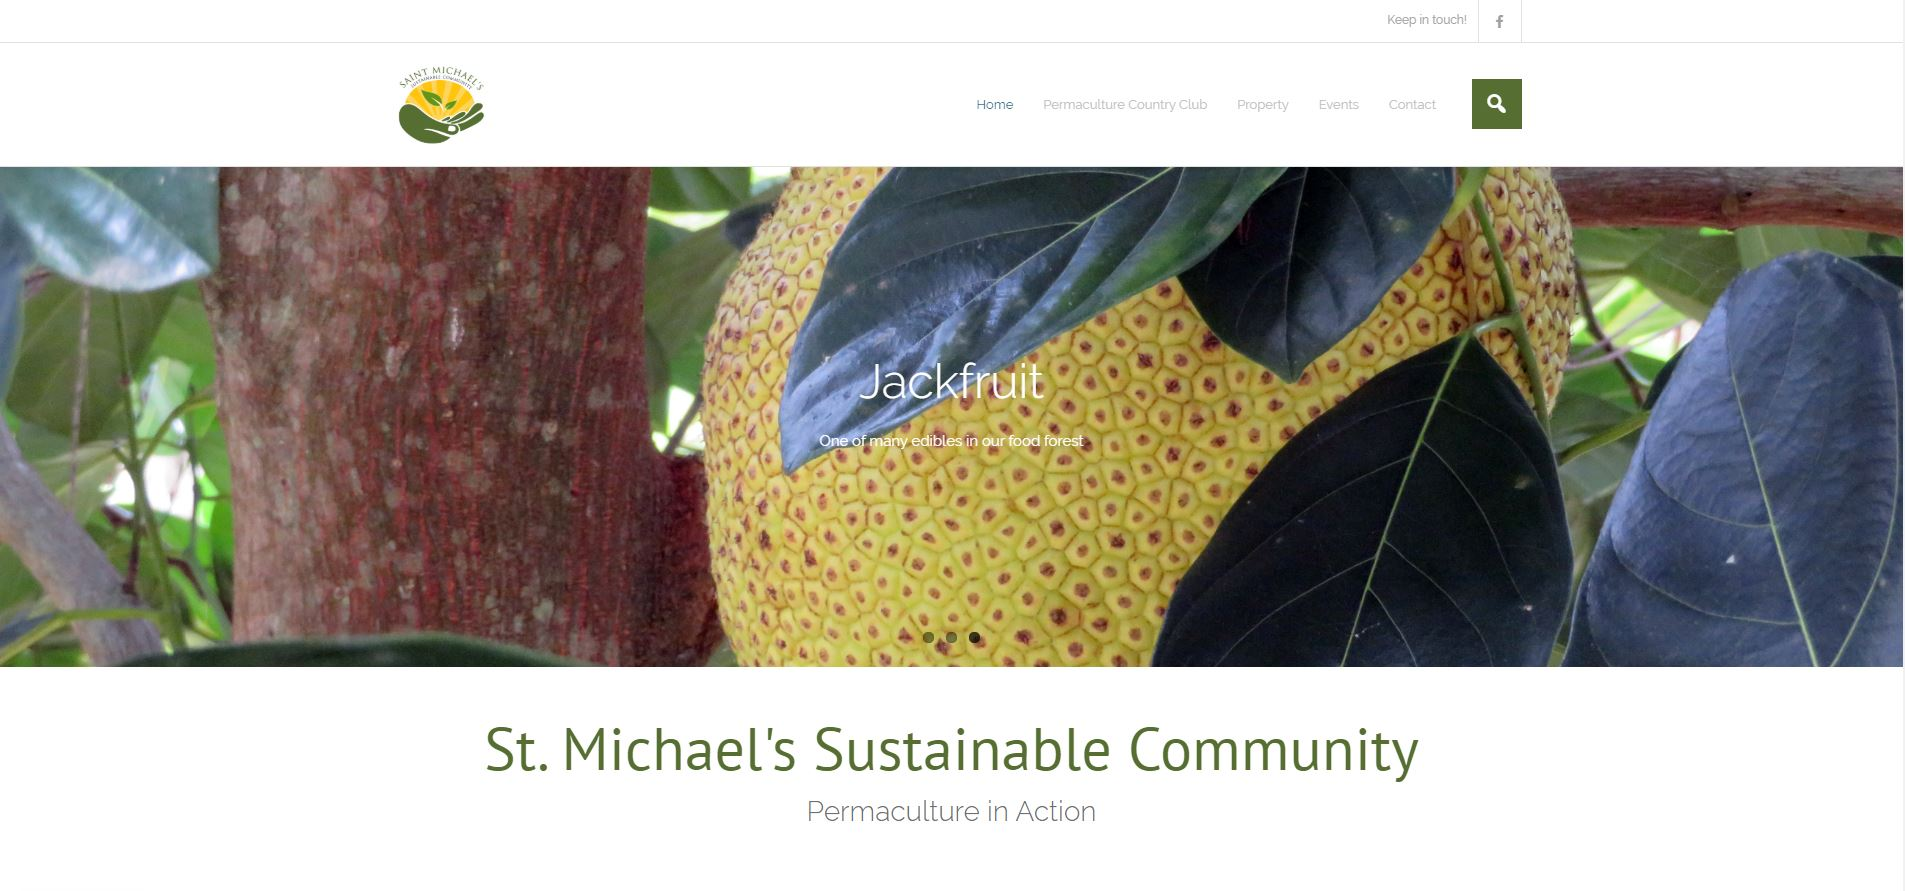 Header image from St. Michael's website